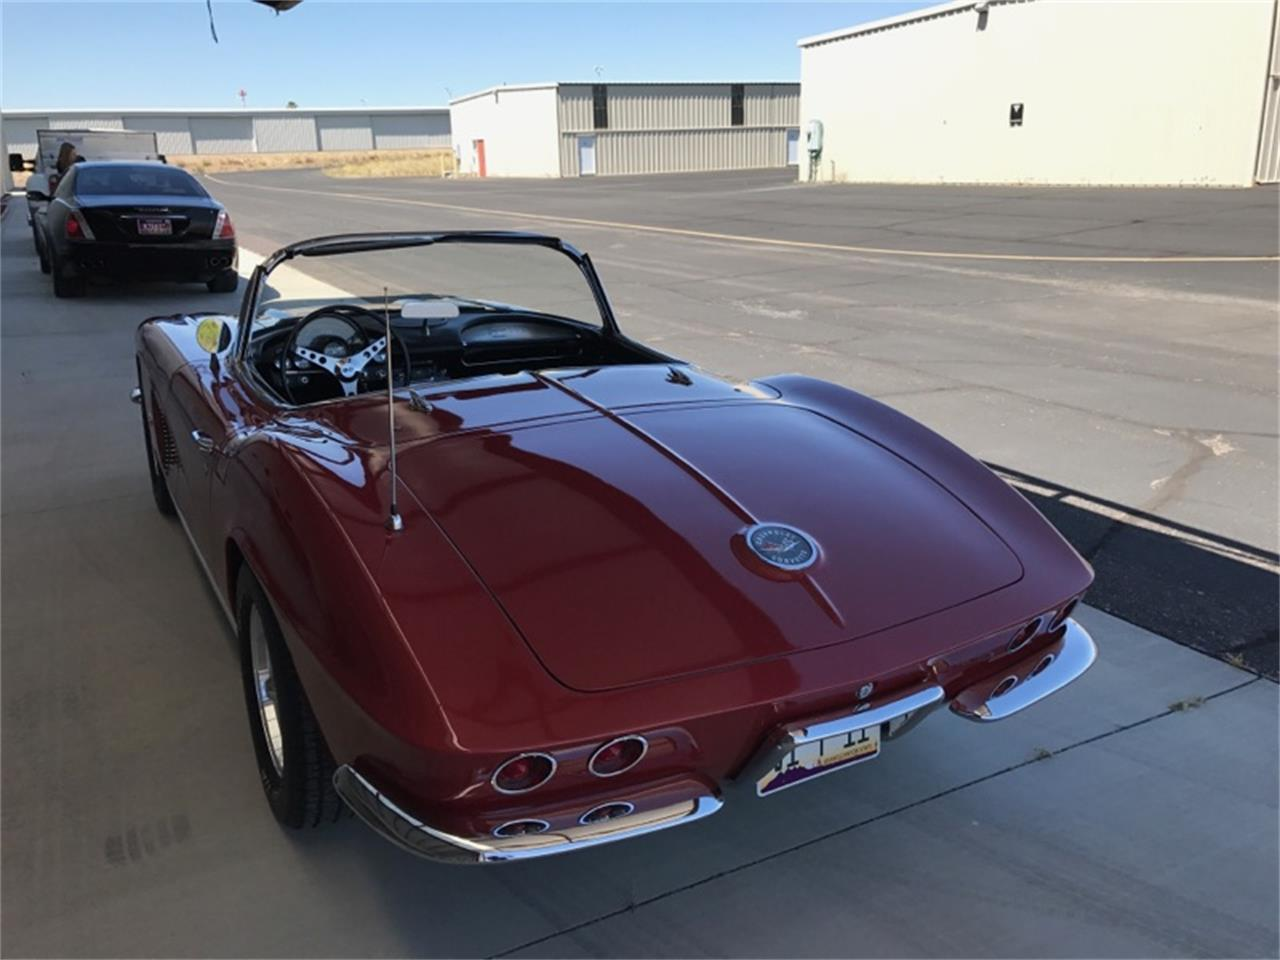 Large Picture of Classic '62 Chevrolet Corvette located in Wickenburg Arizona - $89,000.00 Offered by a Private Seller - L0ZW